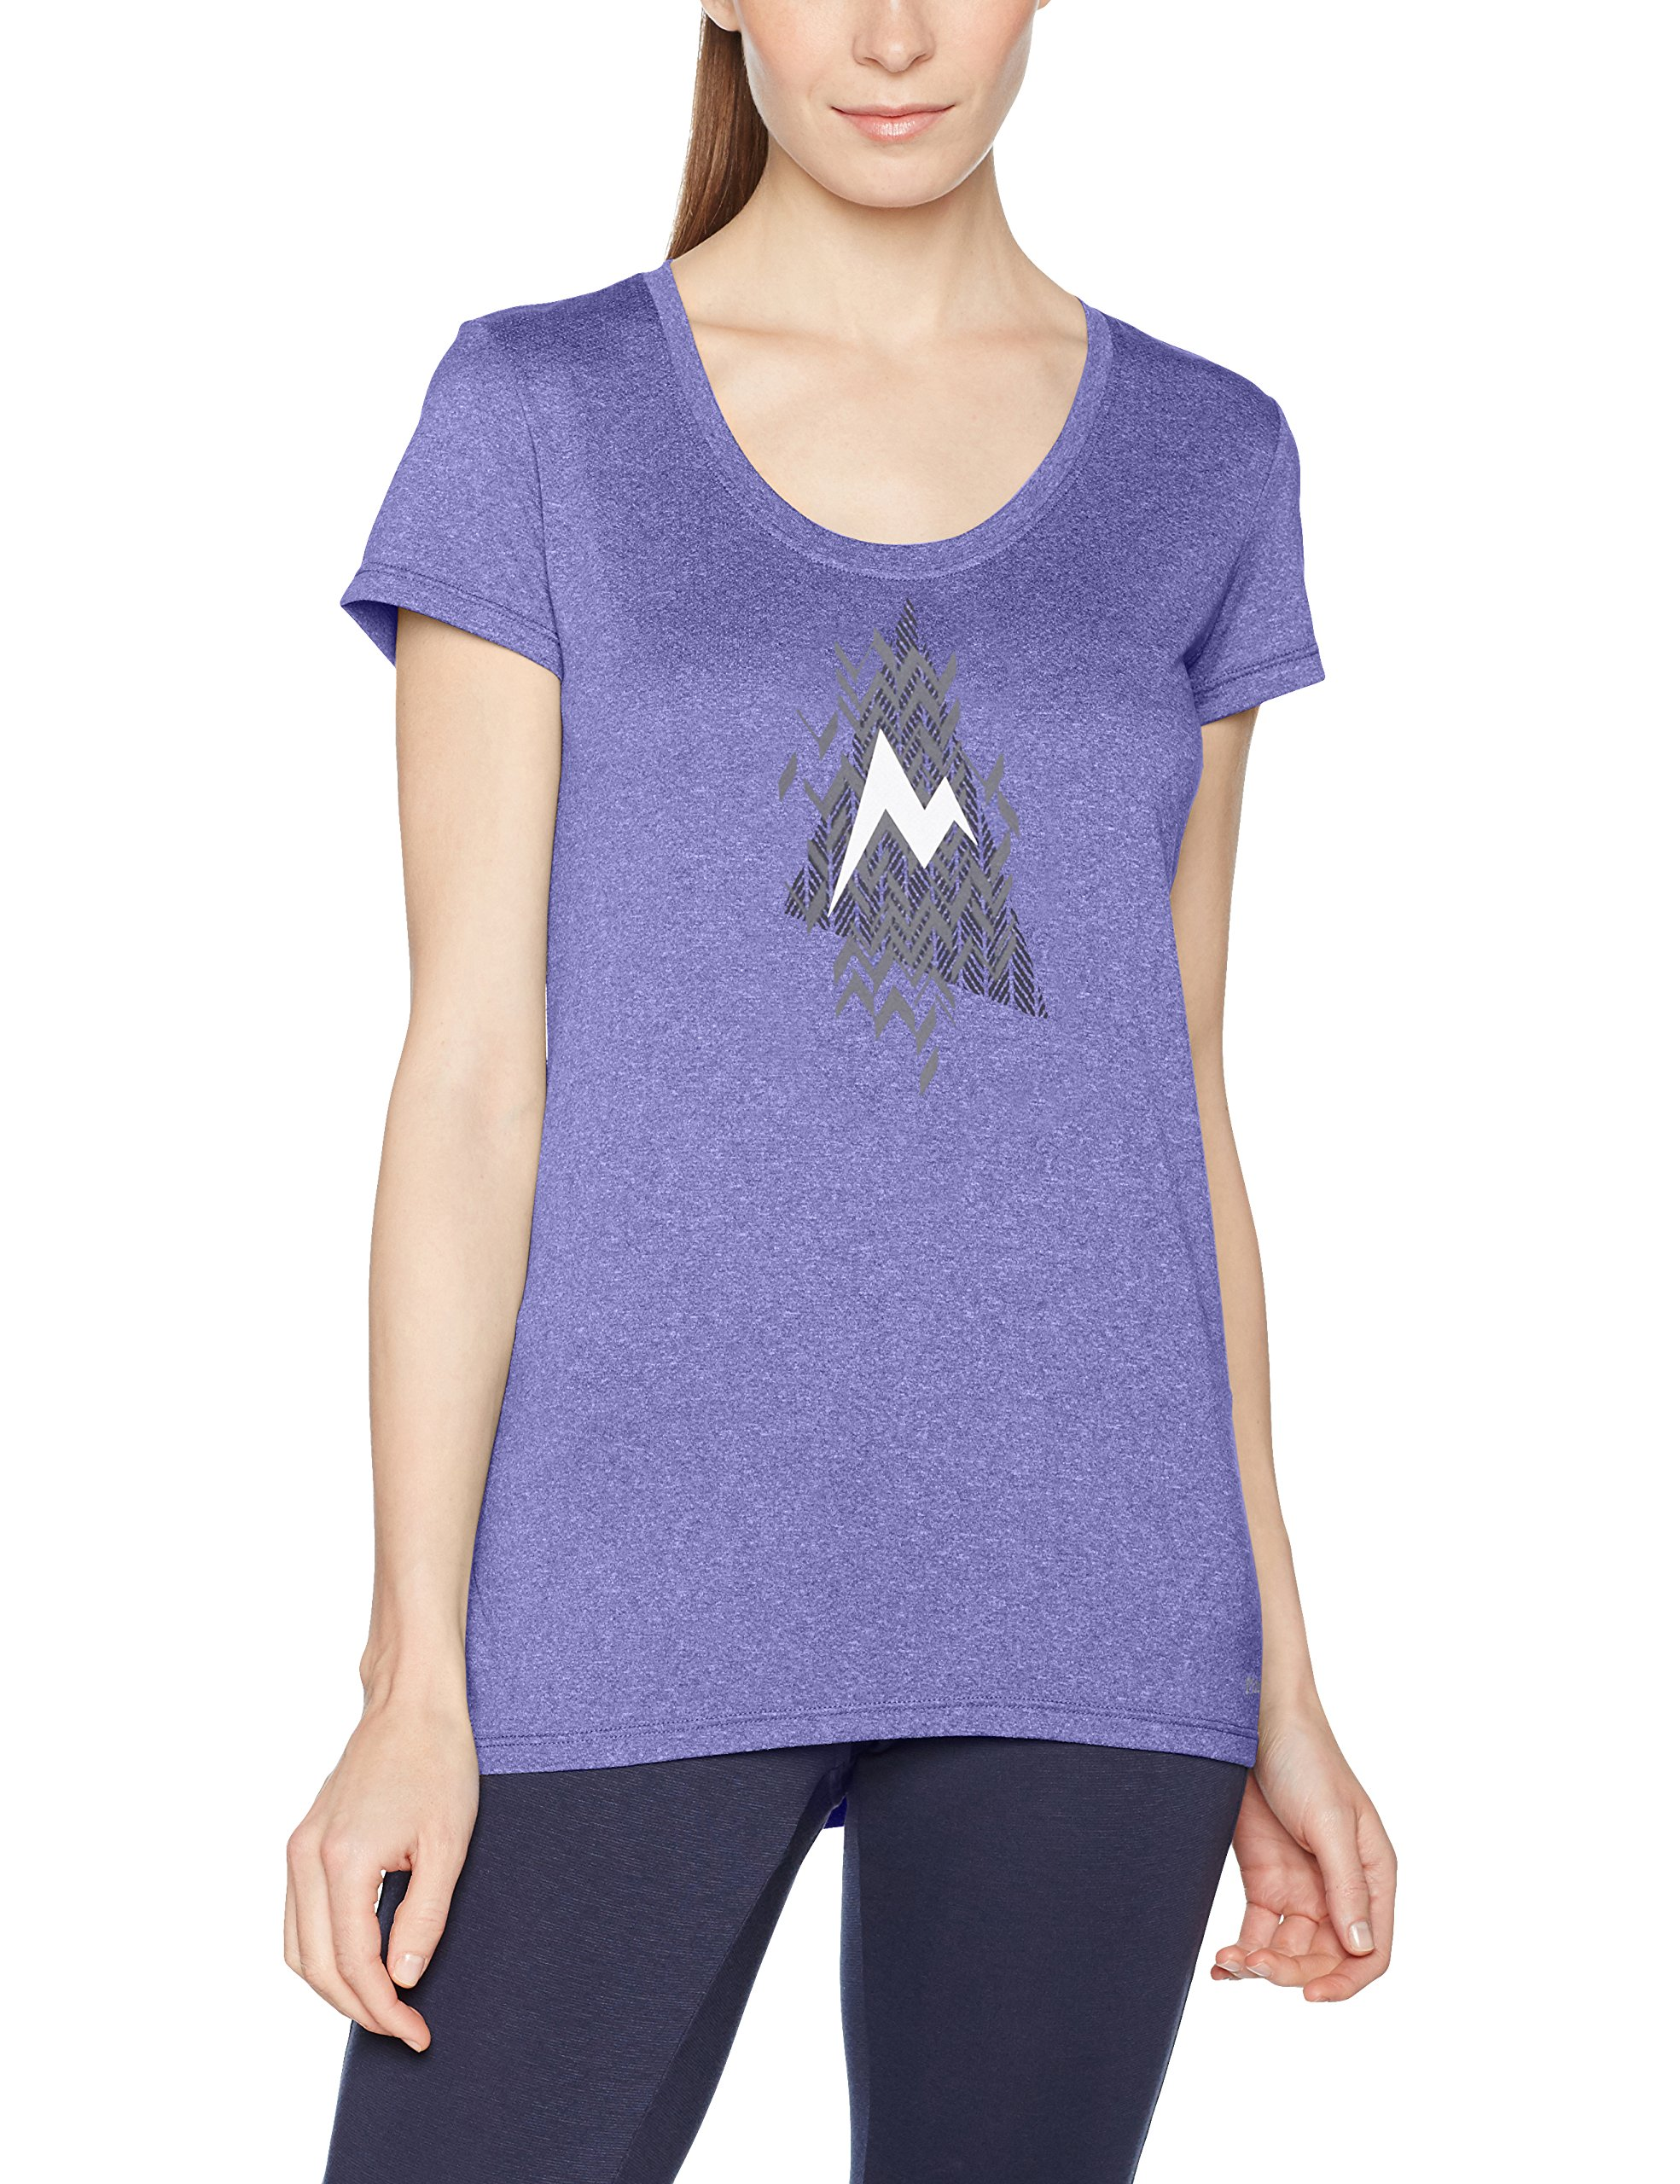 Marmot WM S Post Time Tee Maglietta, Donna, Wm's Post Time Tee, Electric Iris, L